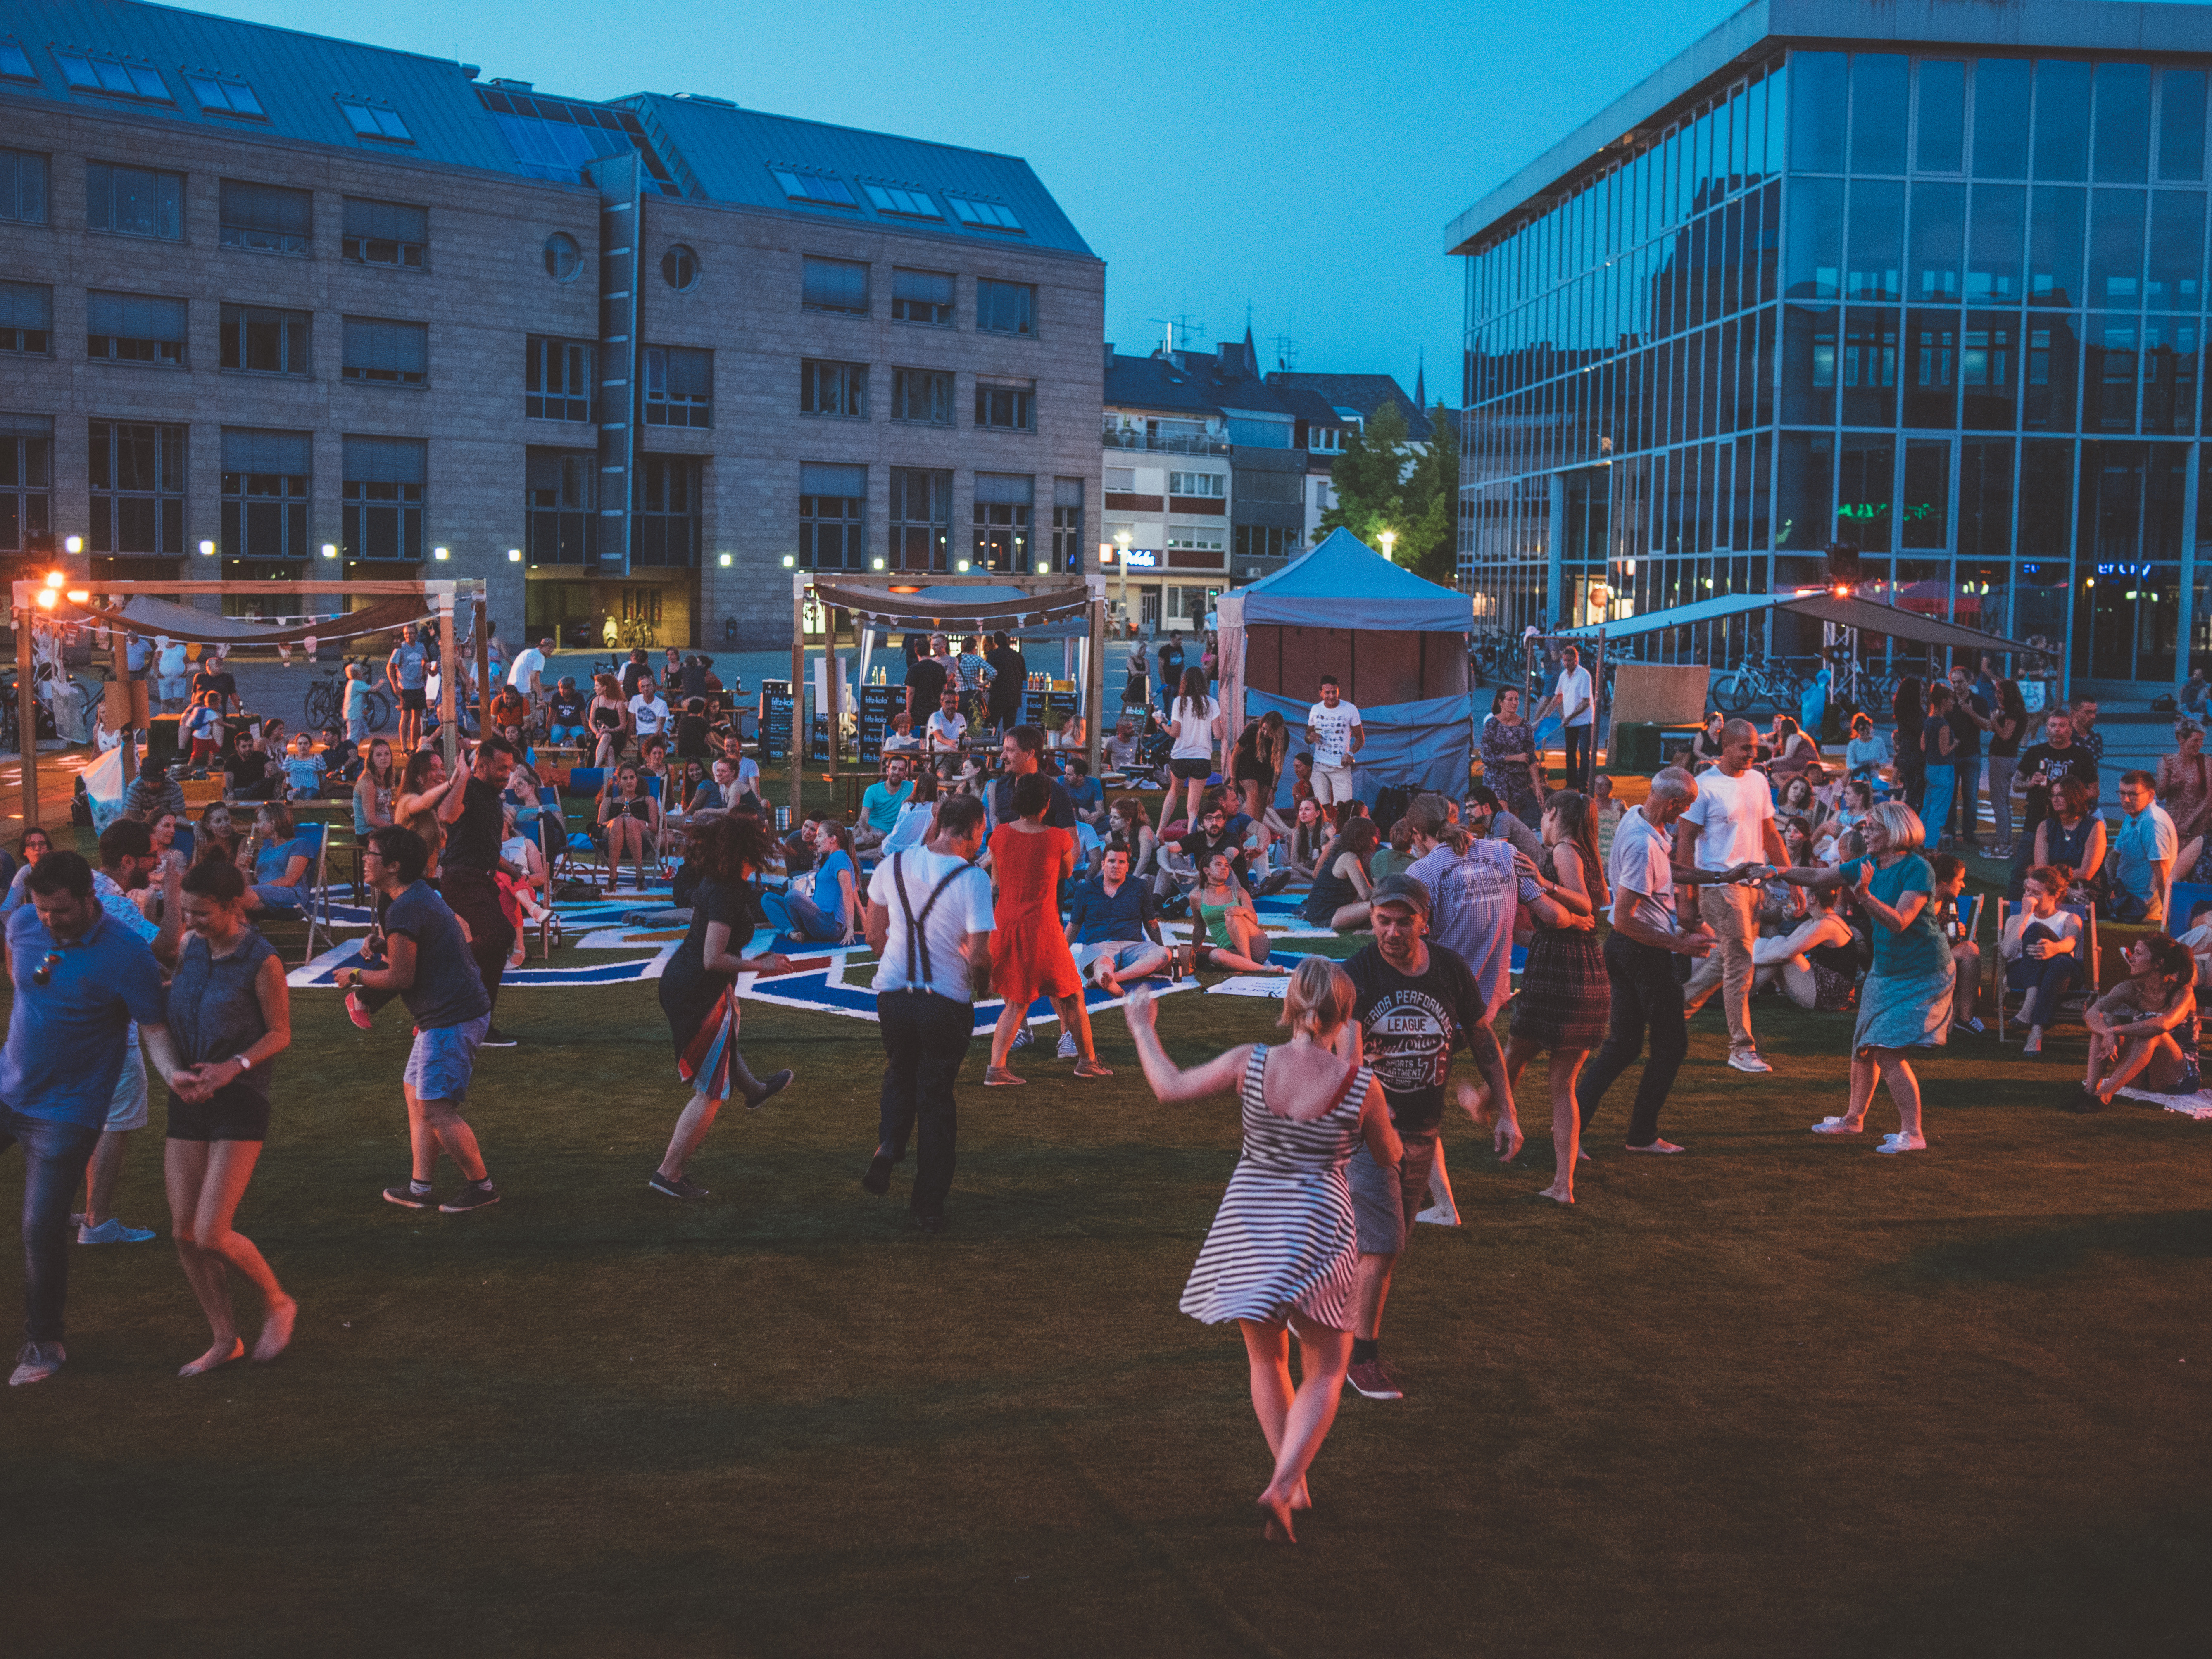 event space, festival, Spatial design, Inclusive, Pop up park, Temporary, resilience, from space to place, Social design, Urban Space, astroturf